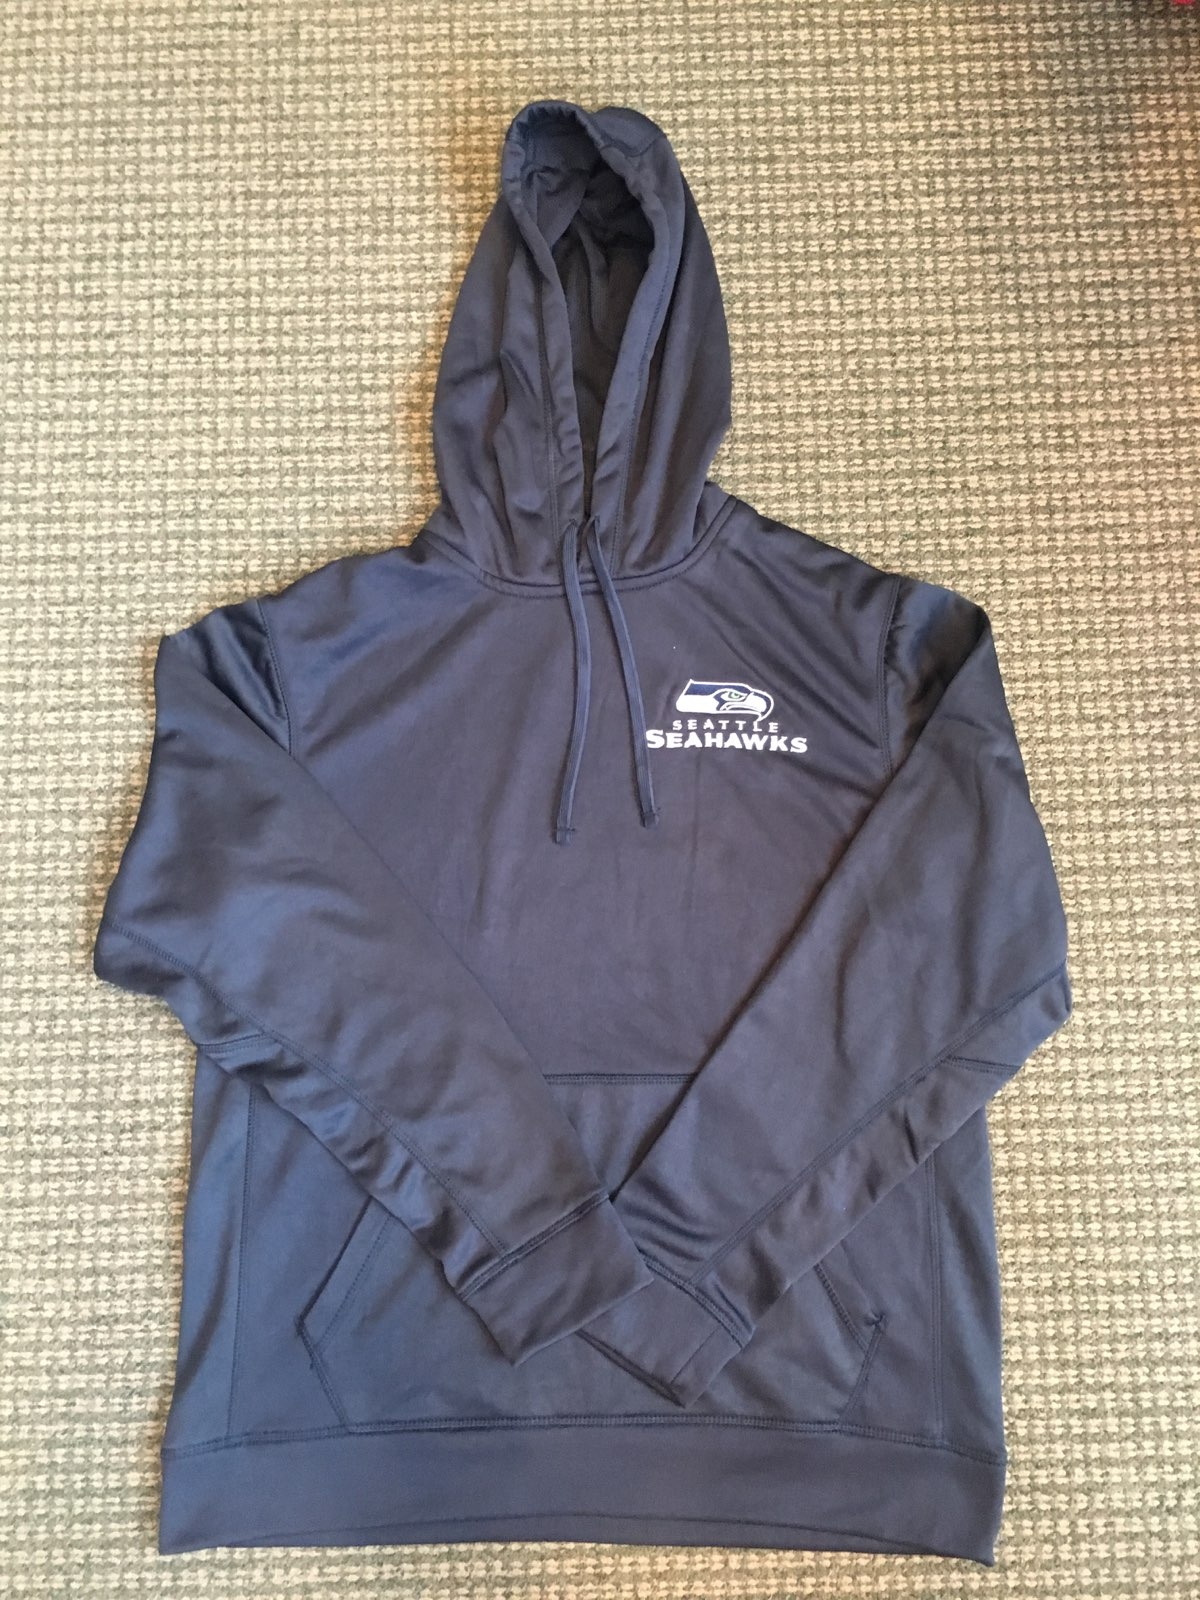 Seahawks Dunbrooke Hoodie Navy , 100% Polyester Size XL